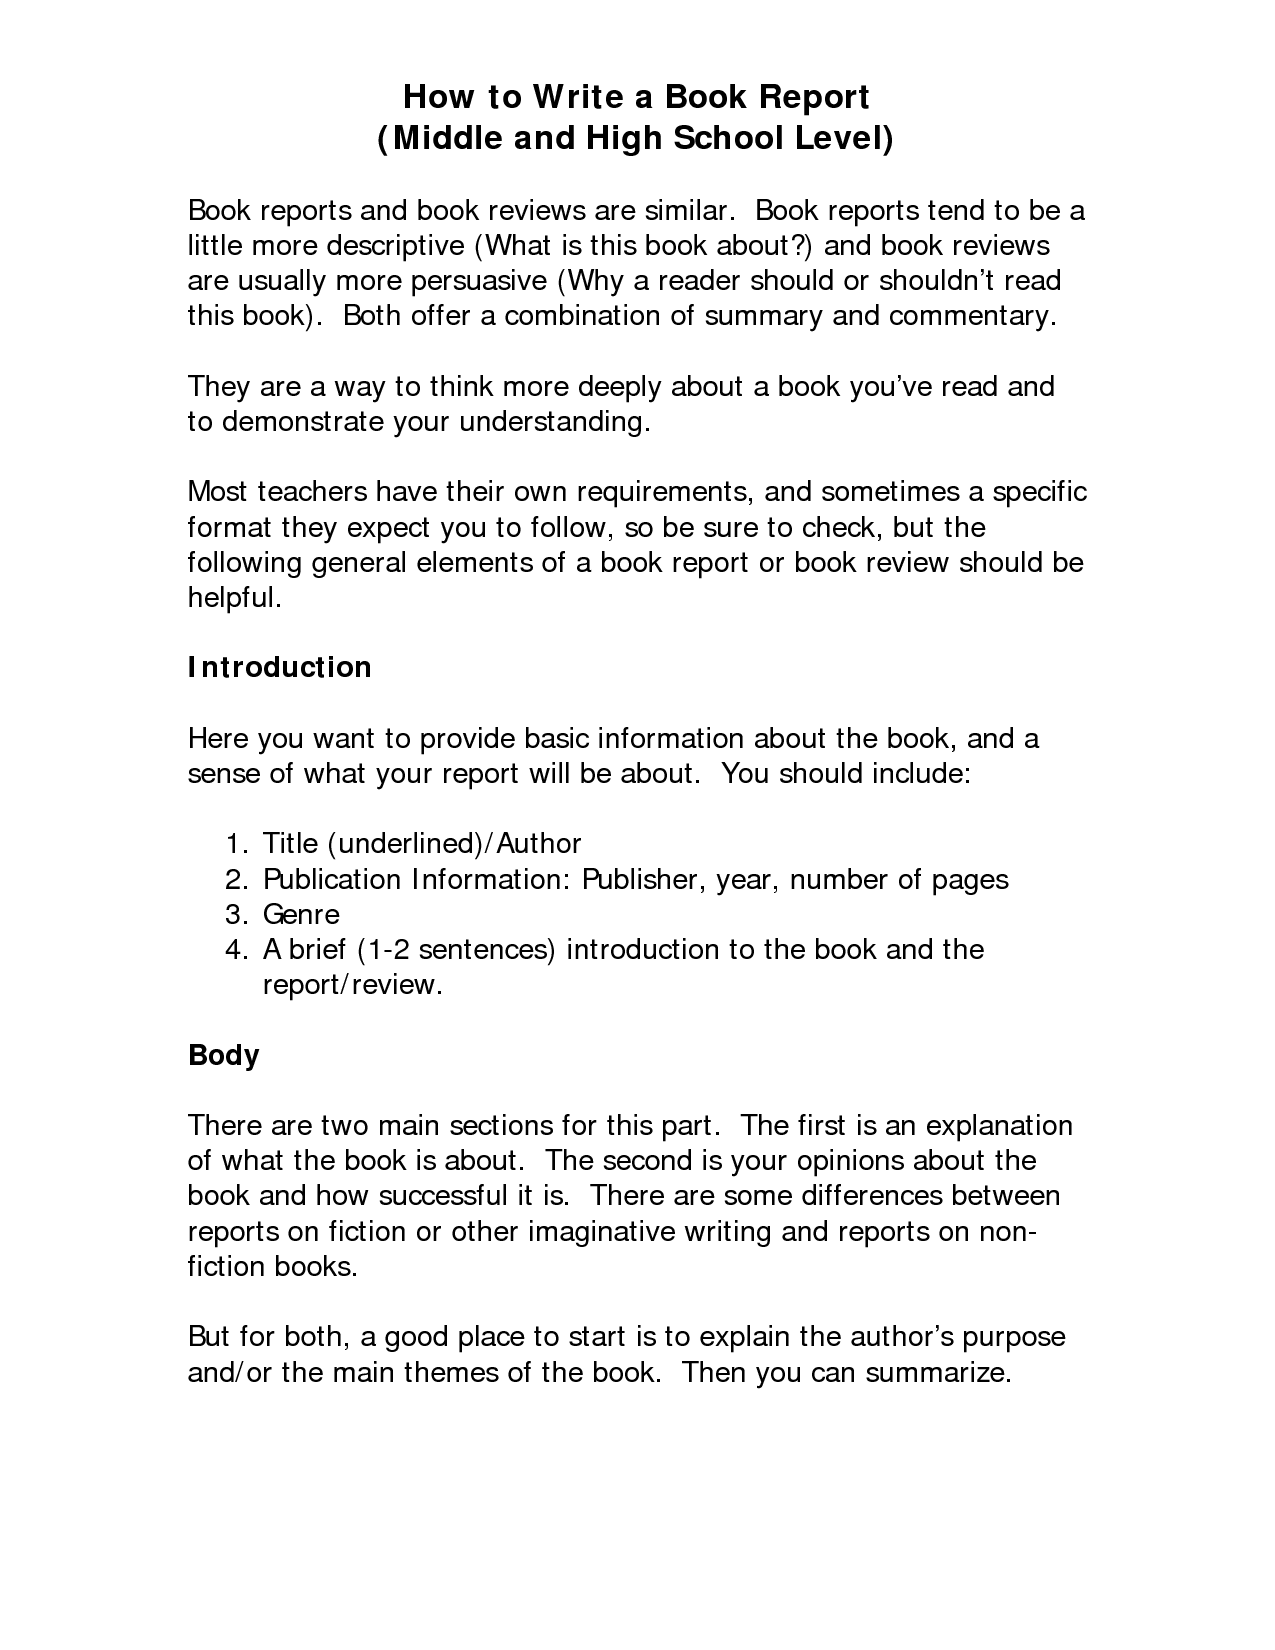 How To Write A Book Report For High School The Canterbury Tales Essay Book Report Template Middle School High School Books Book Report Templates